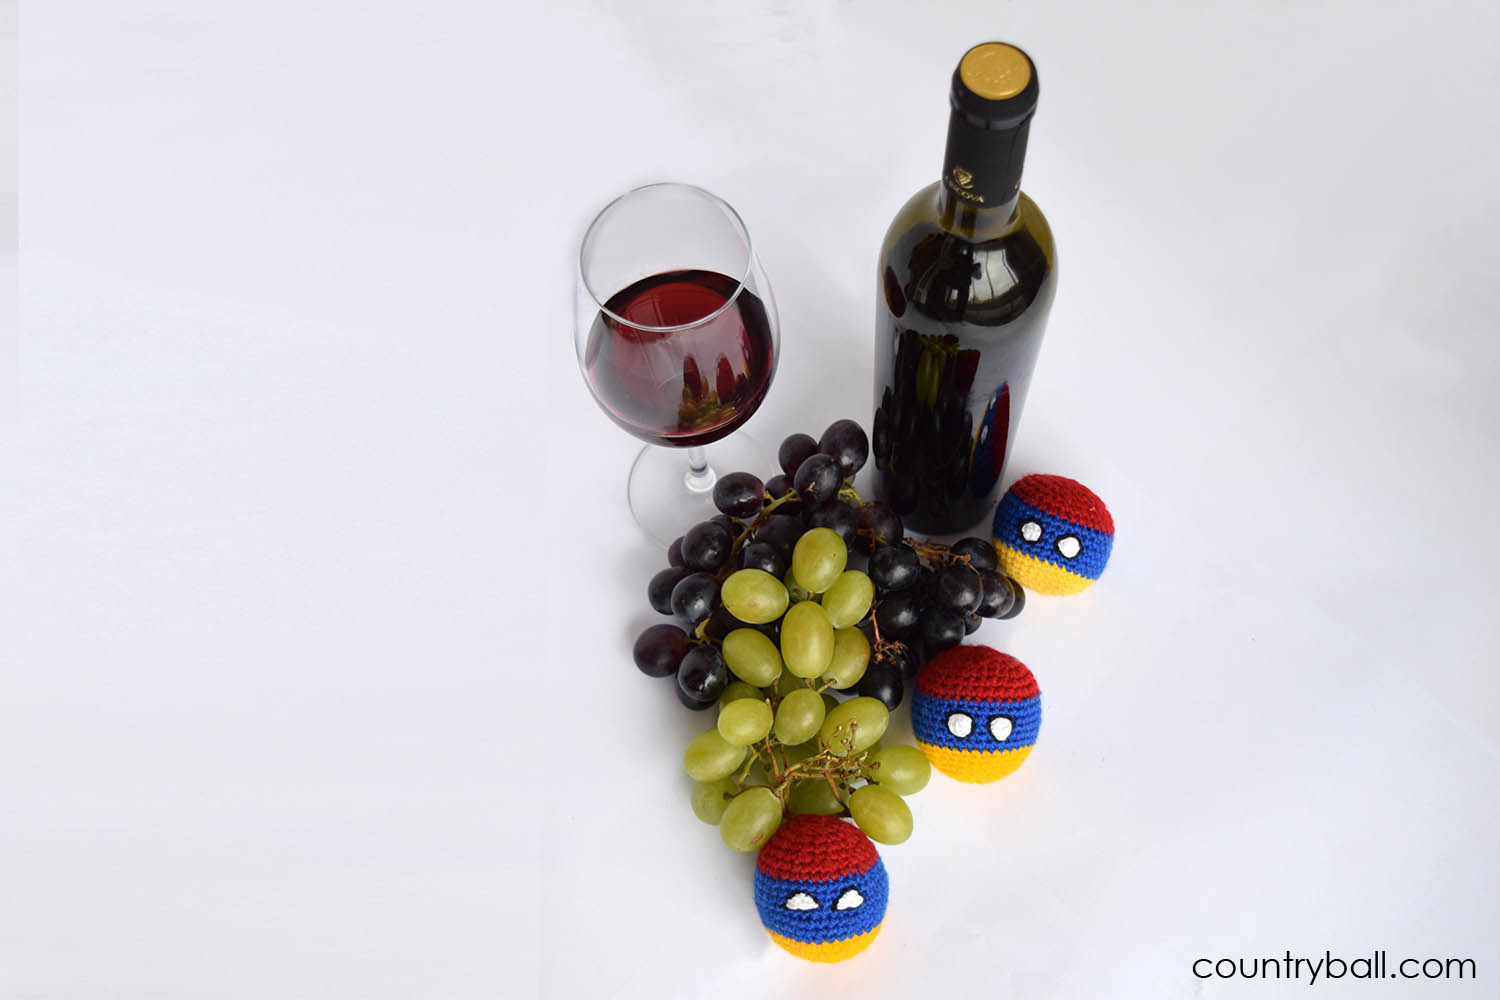 Armeniaball Drinking Wine